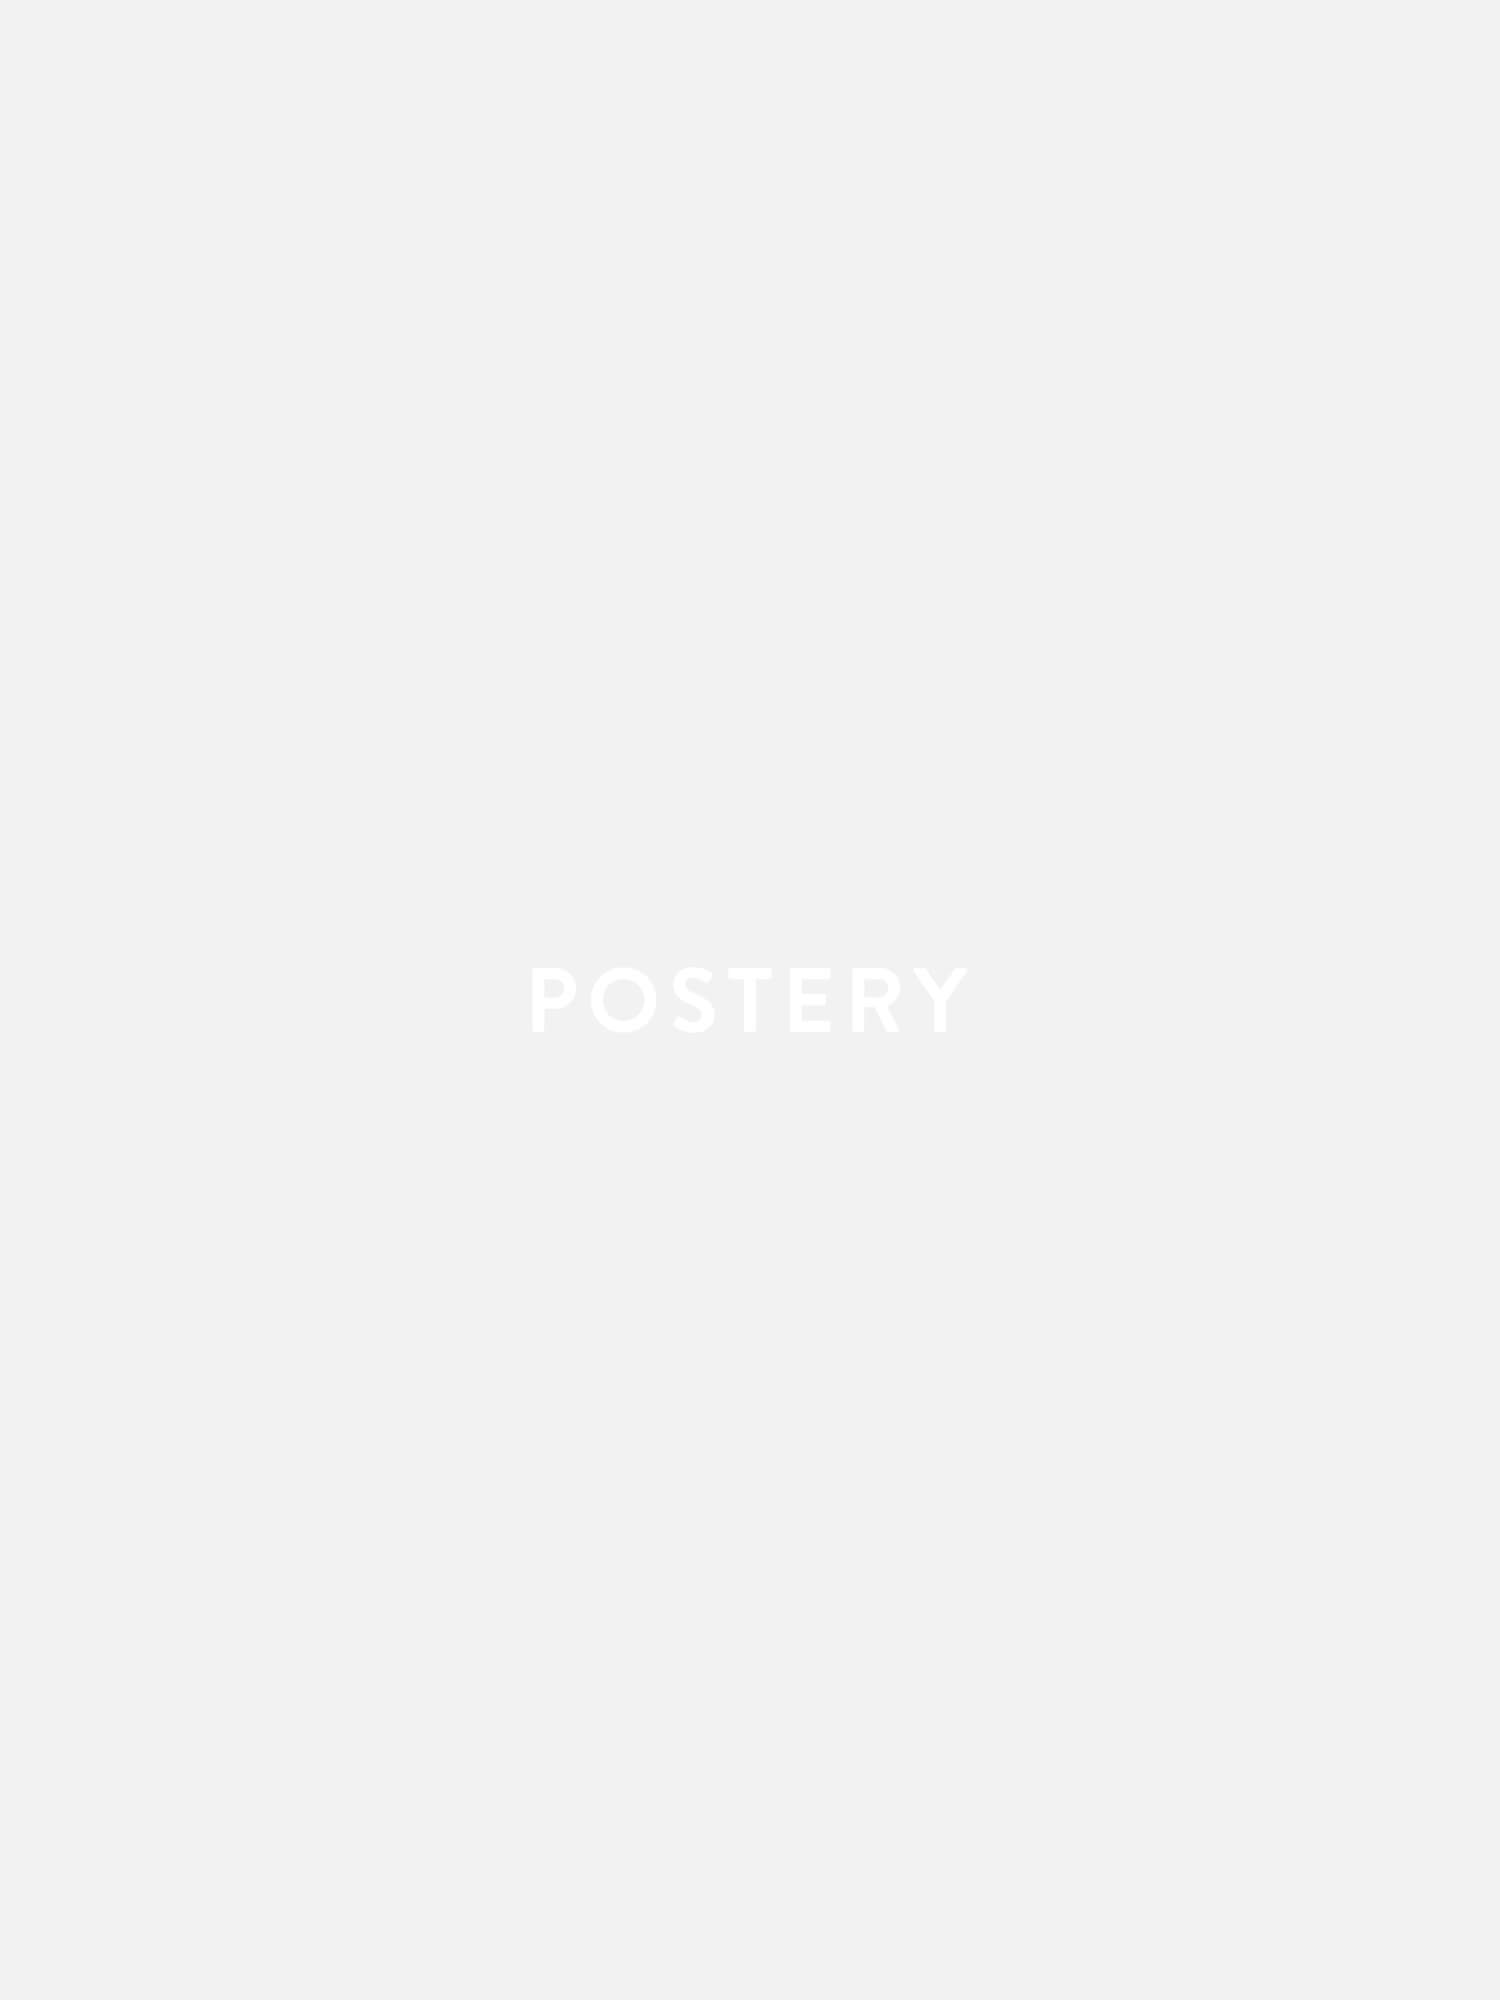 Astronaut in Space Poster